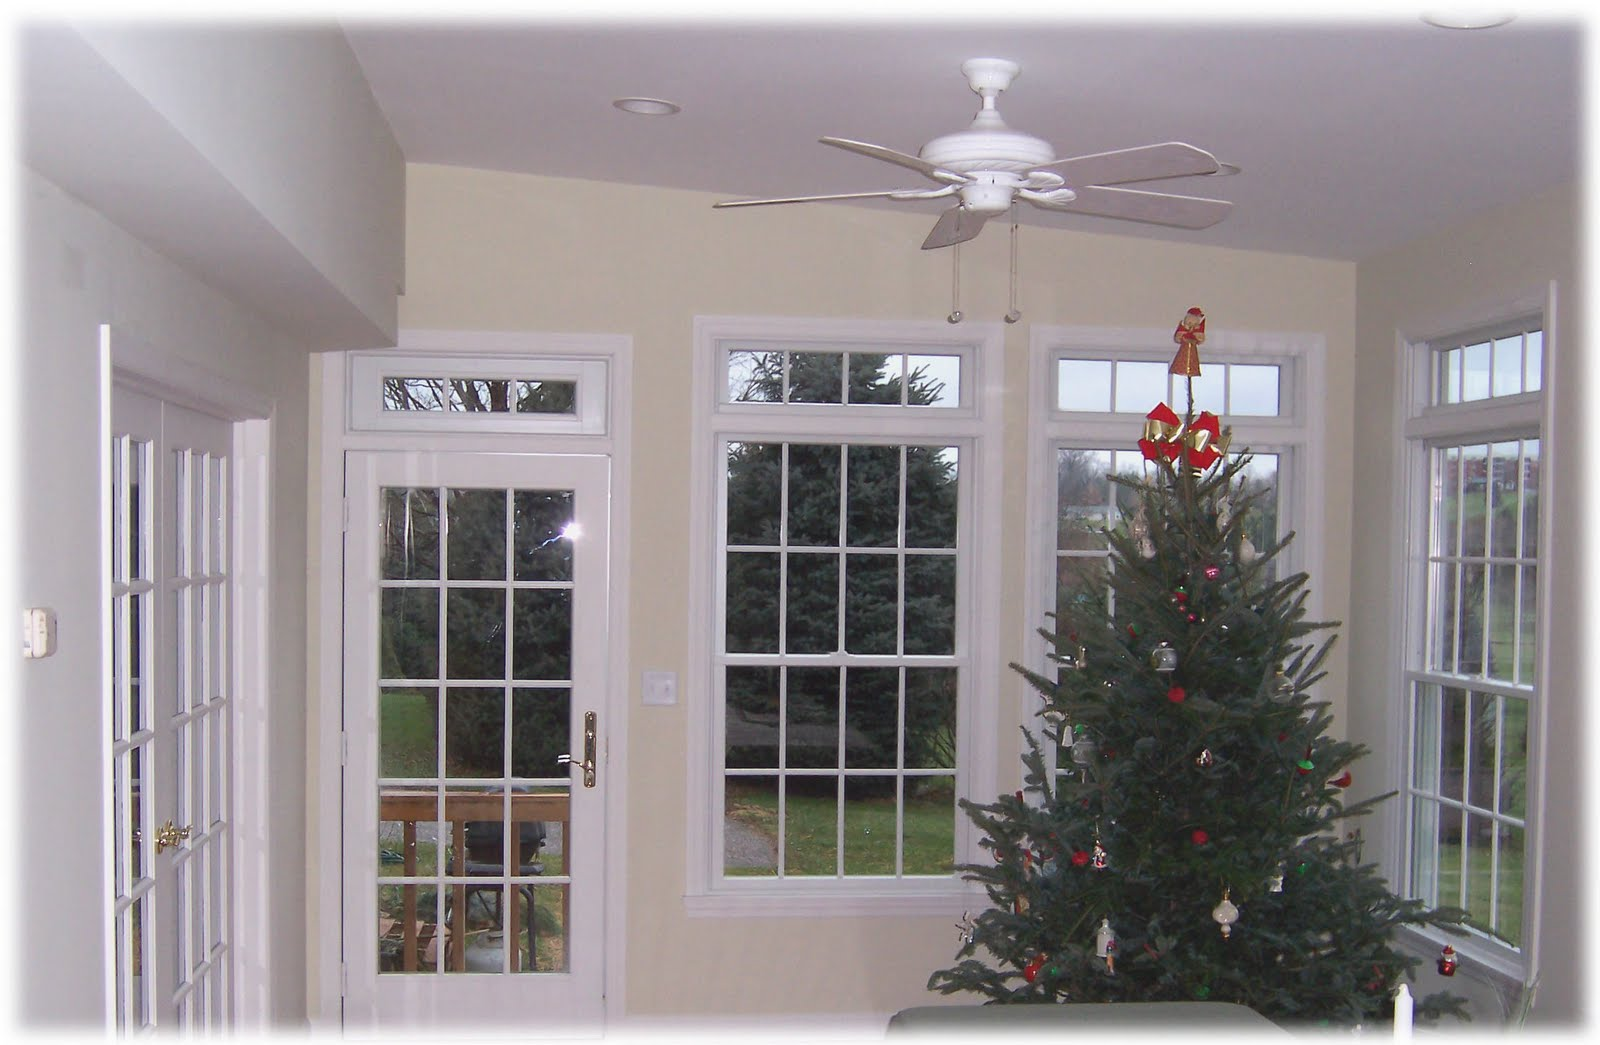 All about window window designs modern or old fashioned for Home with windows